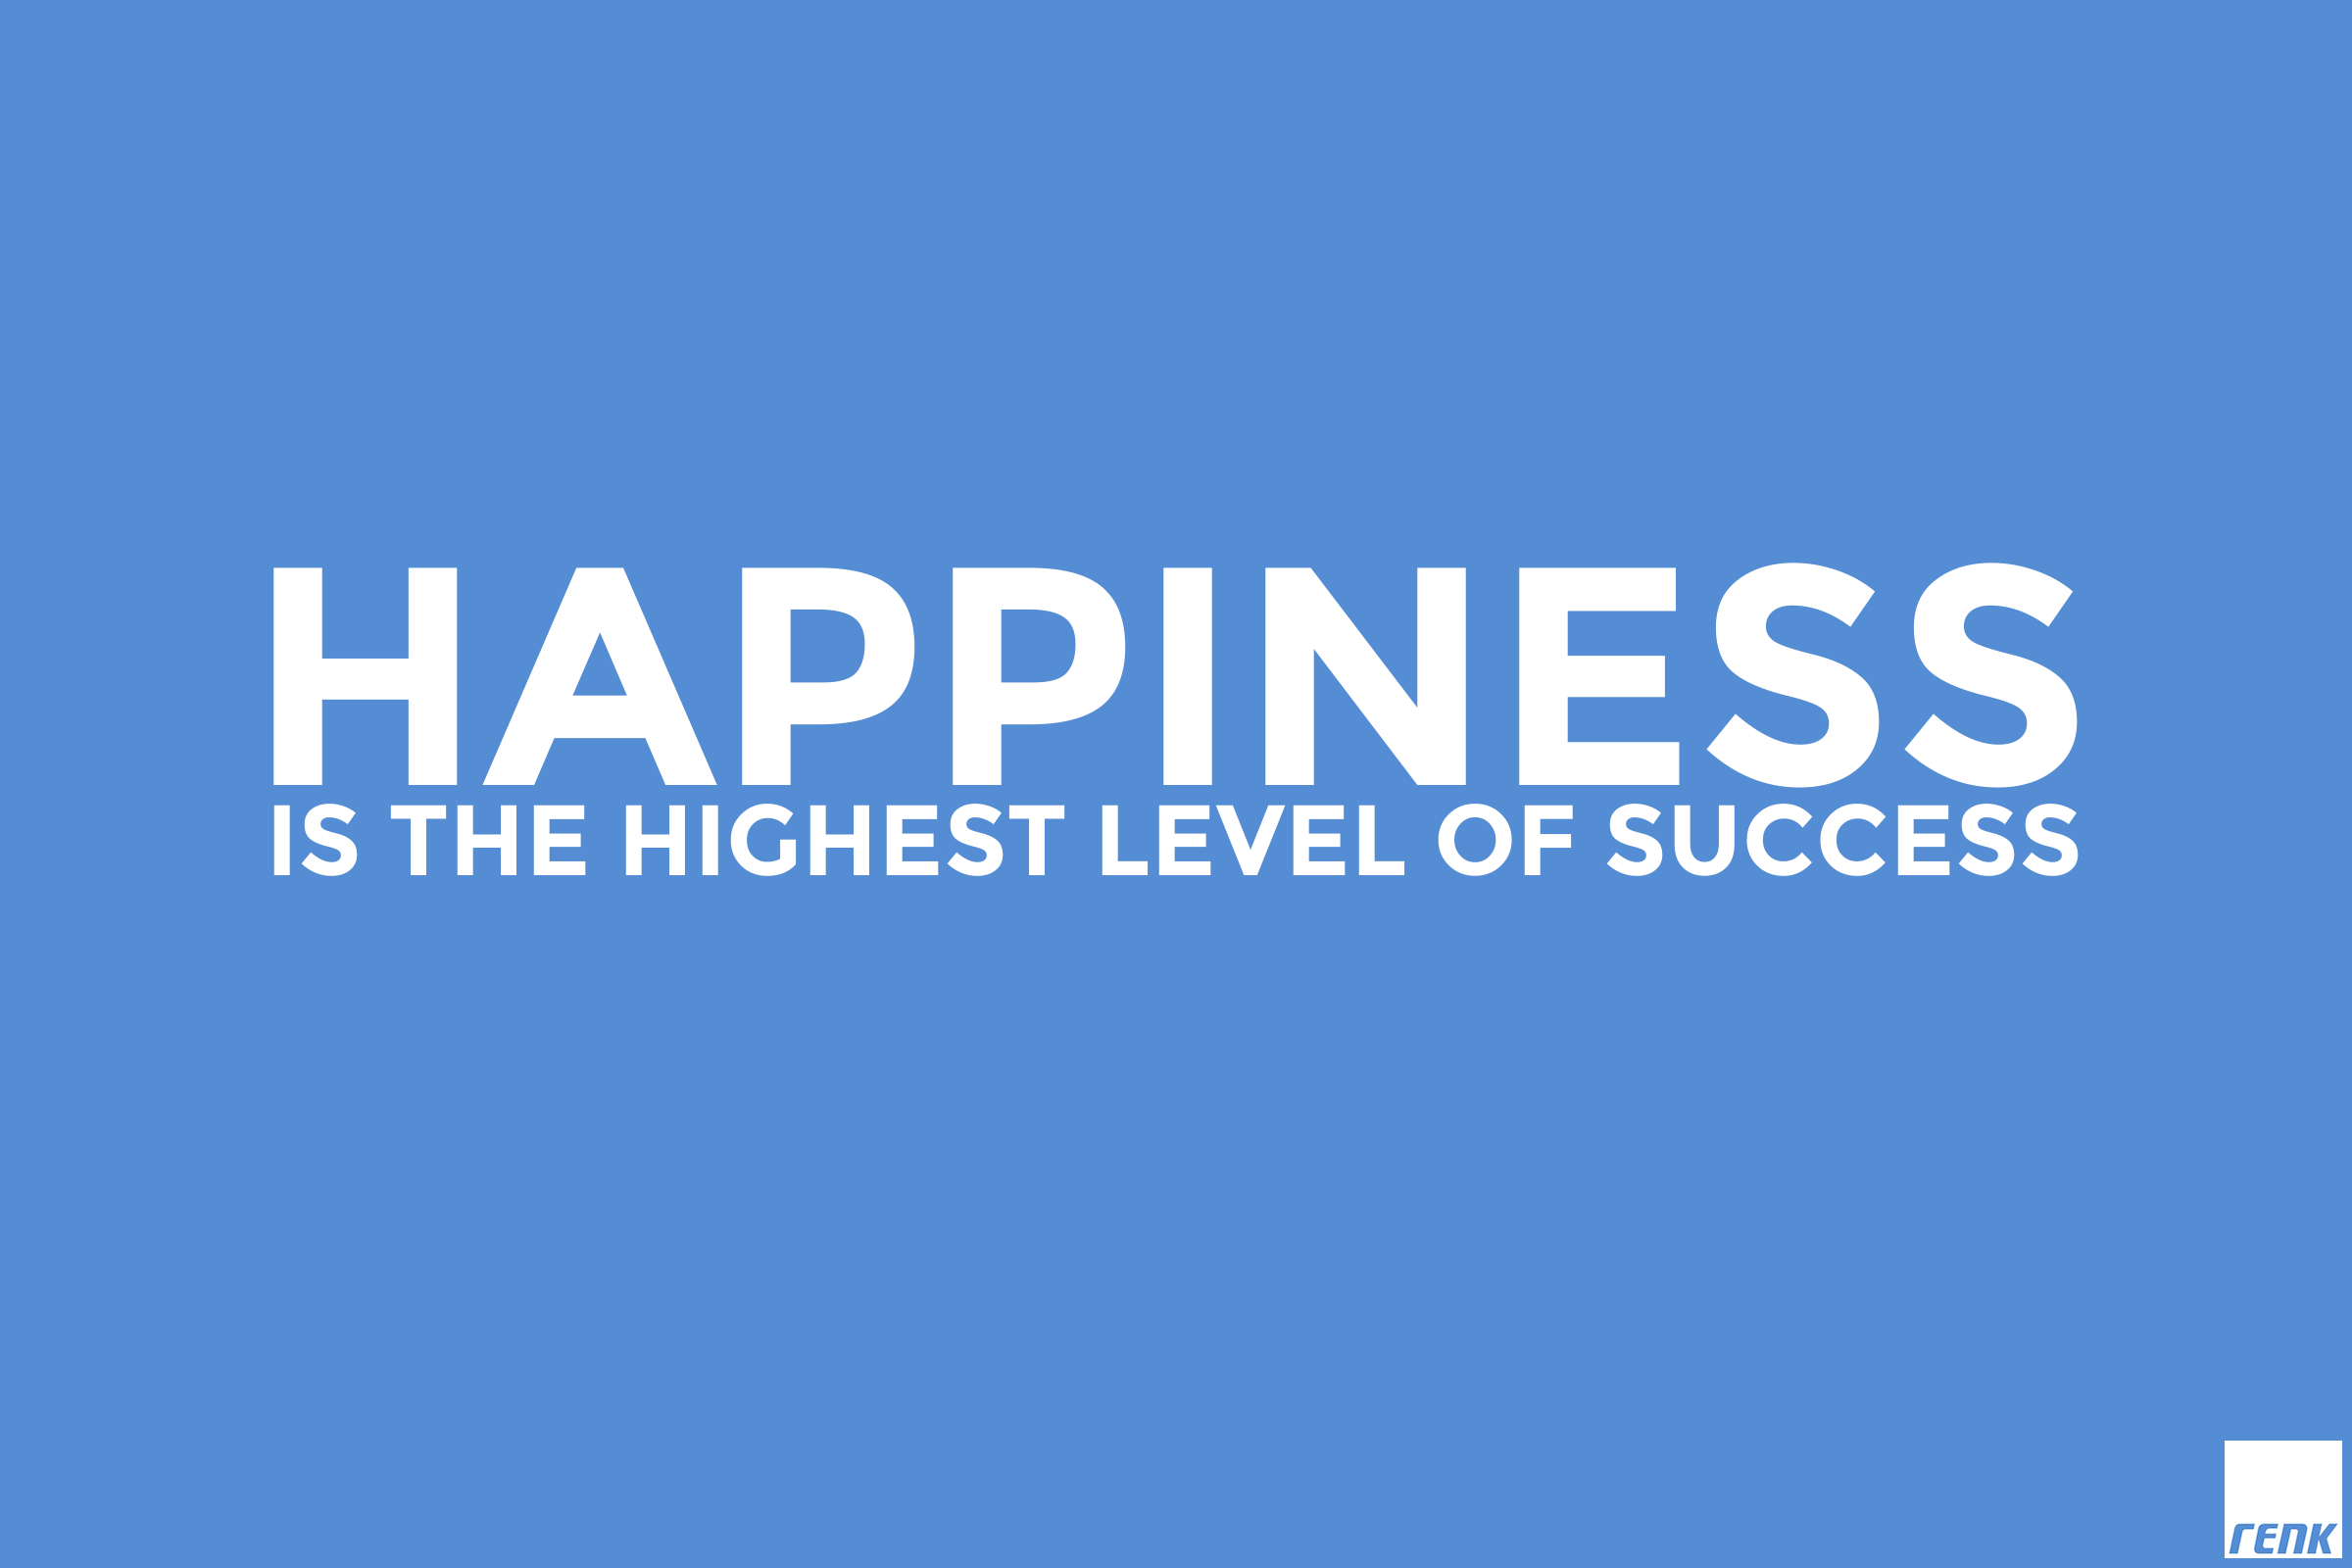 happieness and success When you're a kid, you didn't have to think about happiness  list are more  focused on finding success, while others take a spiritual approach.